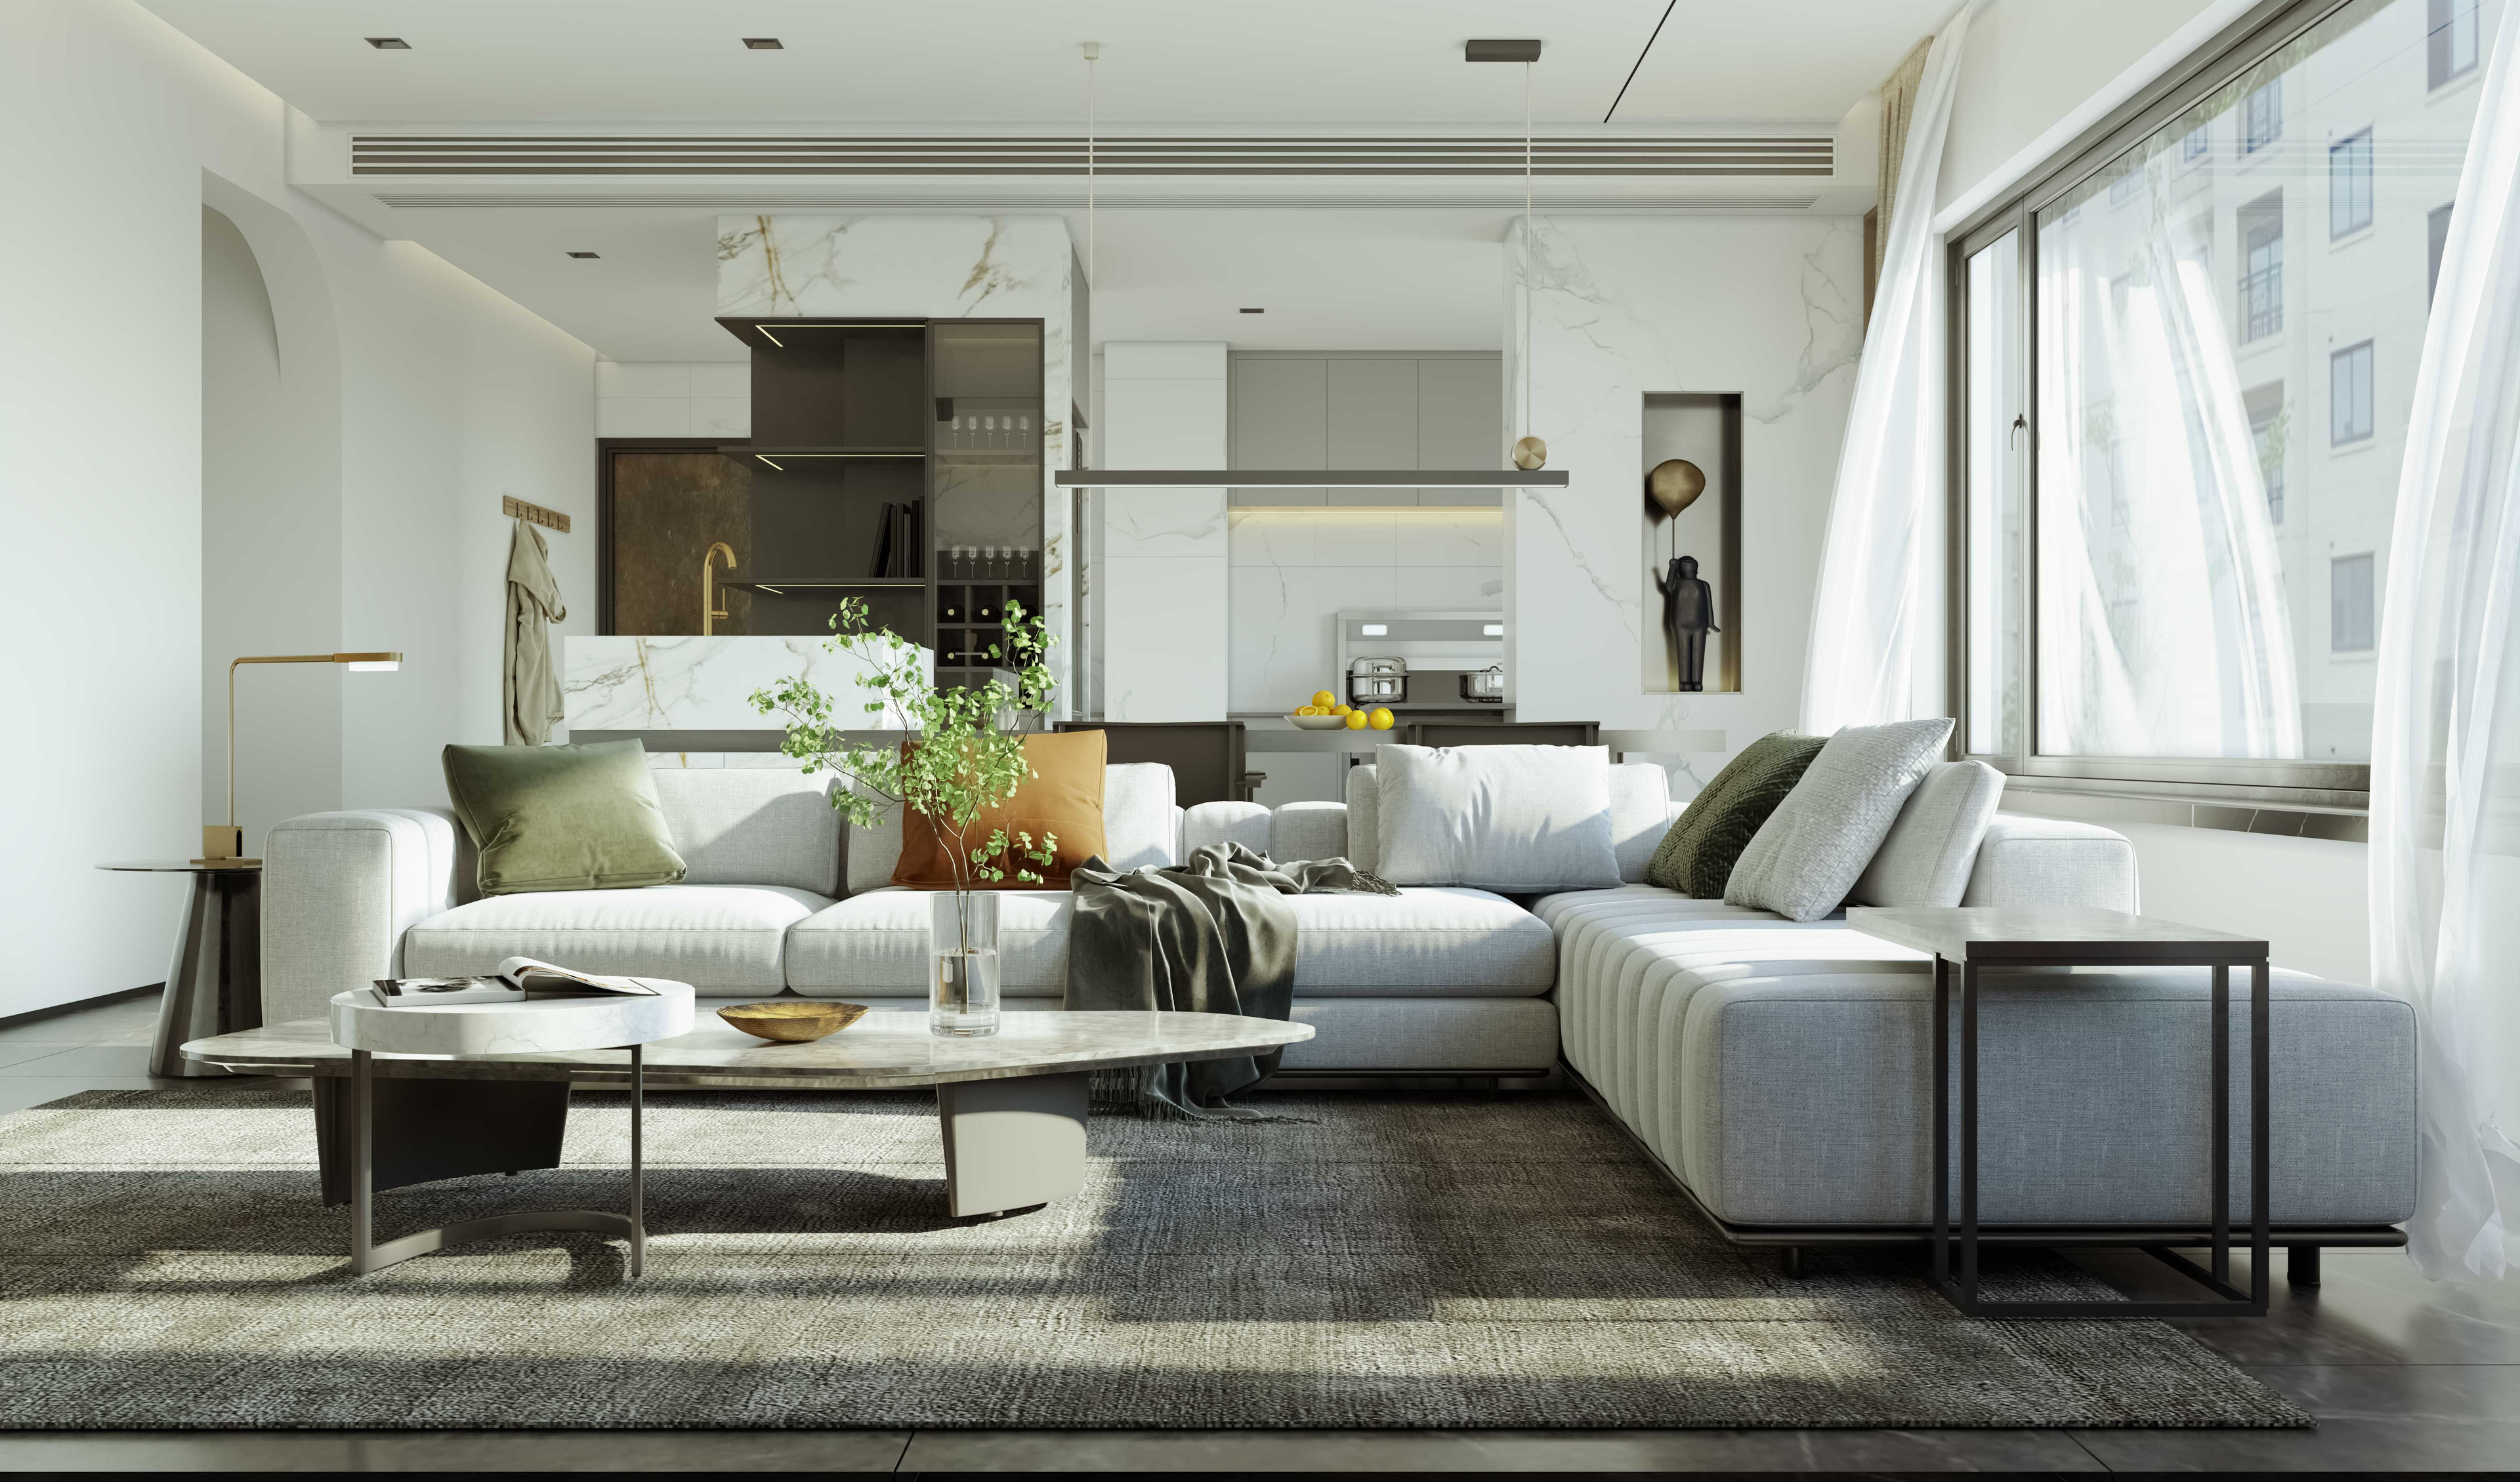 Living Room Afternoon Light Study 3ds Max V-Ray Photoshop Asset: 3dBrute Materials and Lighting Rendering Lente Scura 5SRW - Learning V-Ray Method